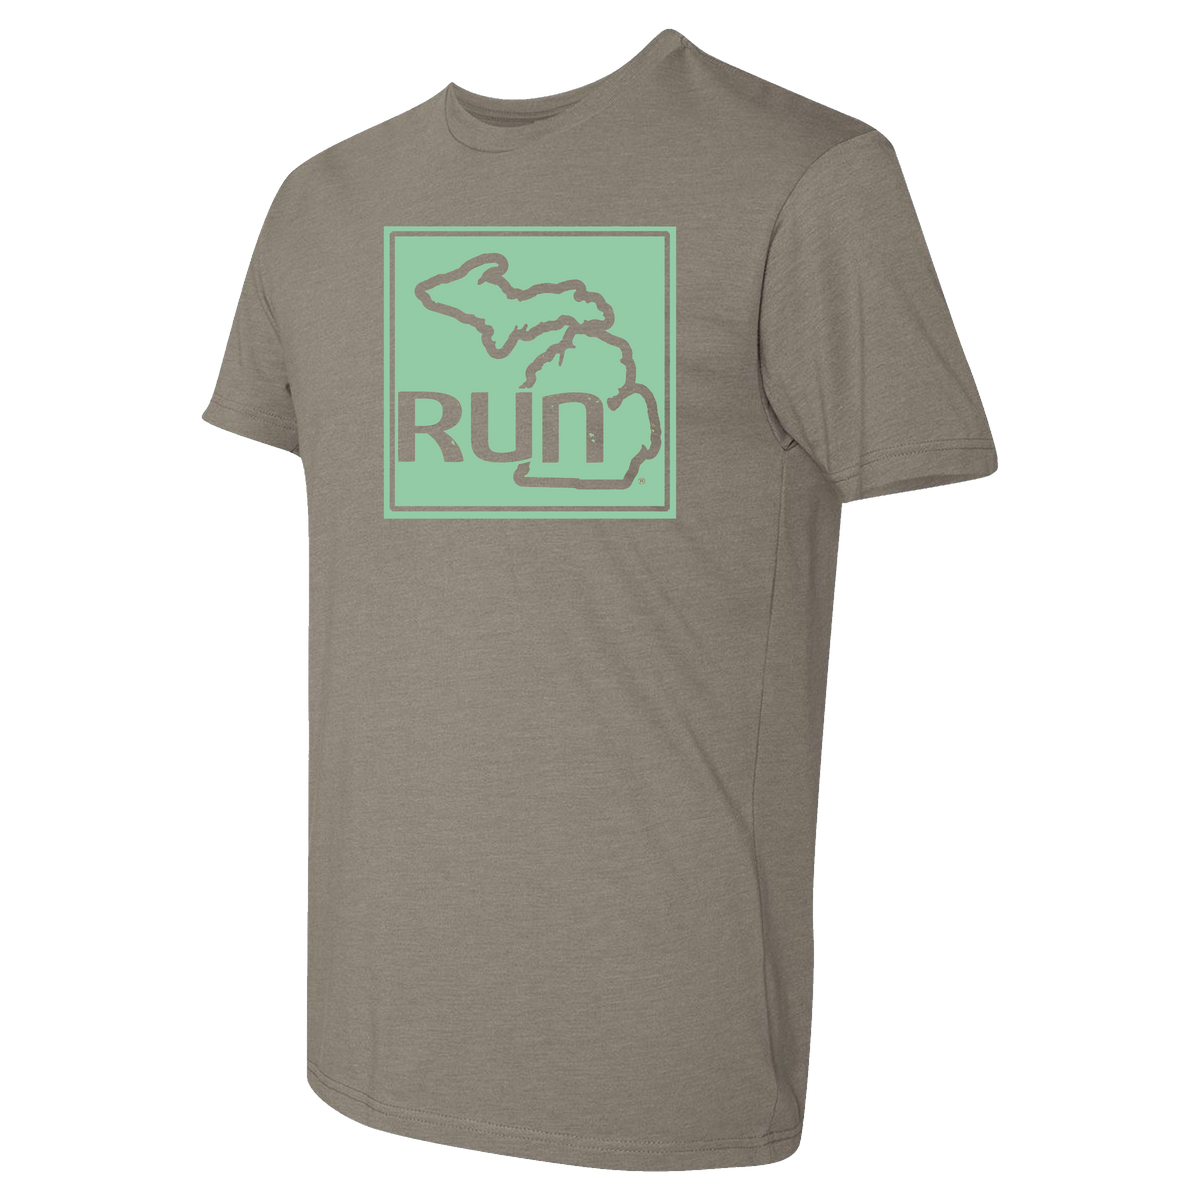 Run the Mitt Short Sleeve Warm Grey Sea Foam